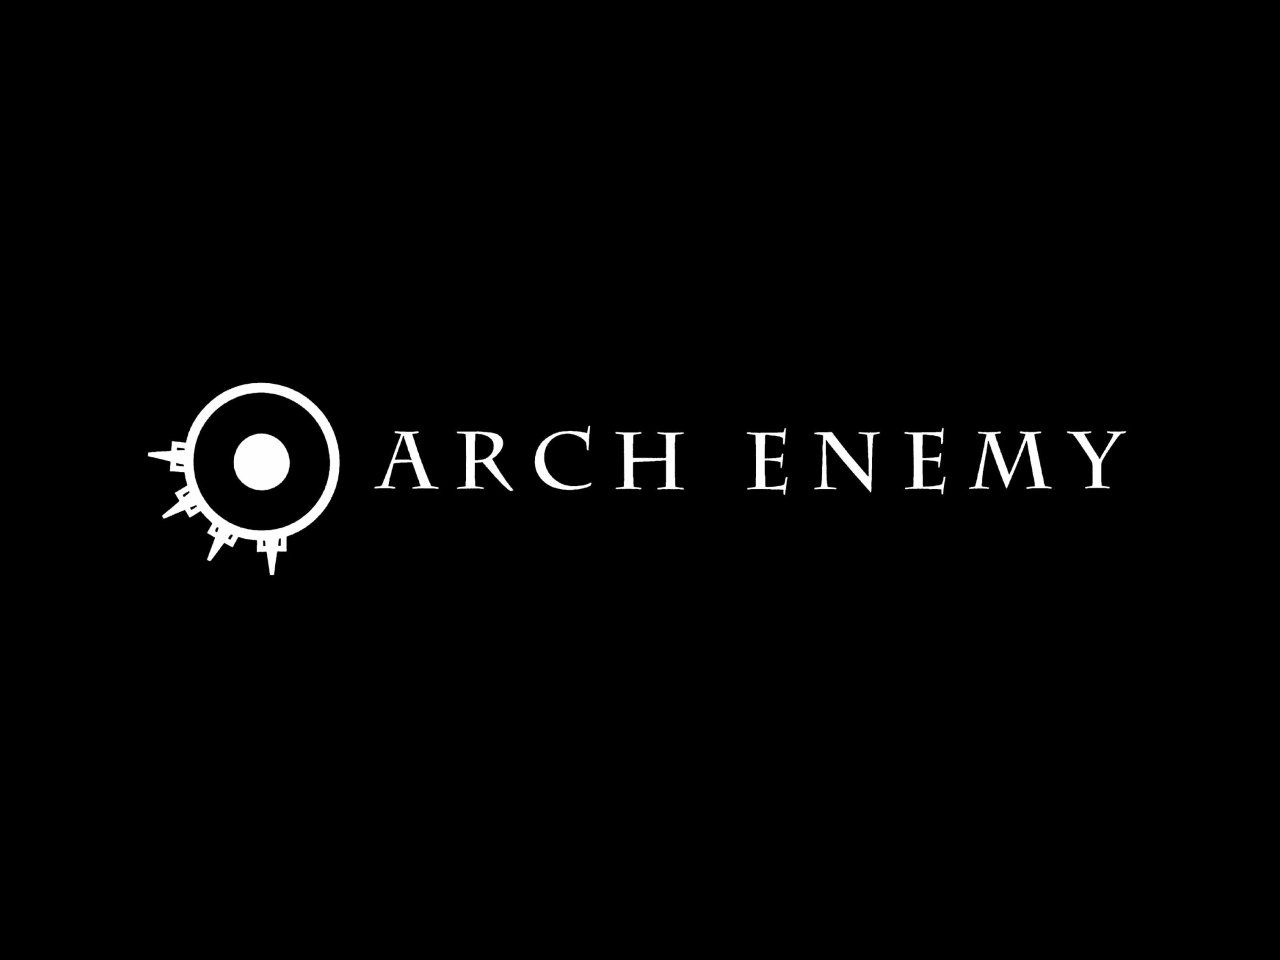 Arch-Enemy-black-logo-wallpaper.jpg (1280×960) | p BHC ...